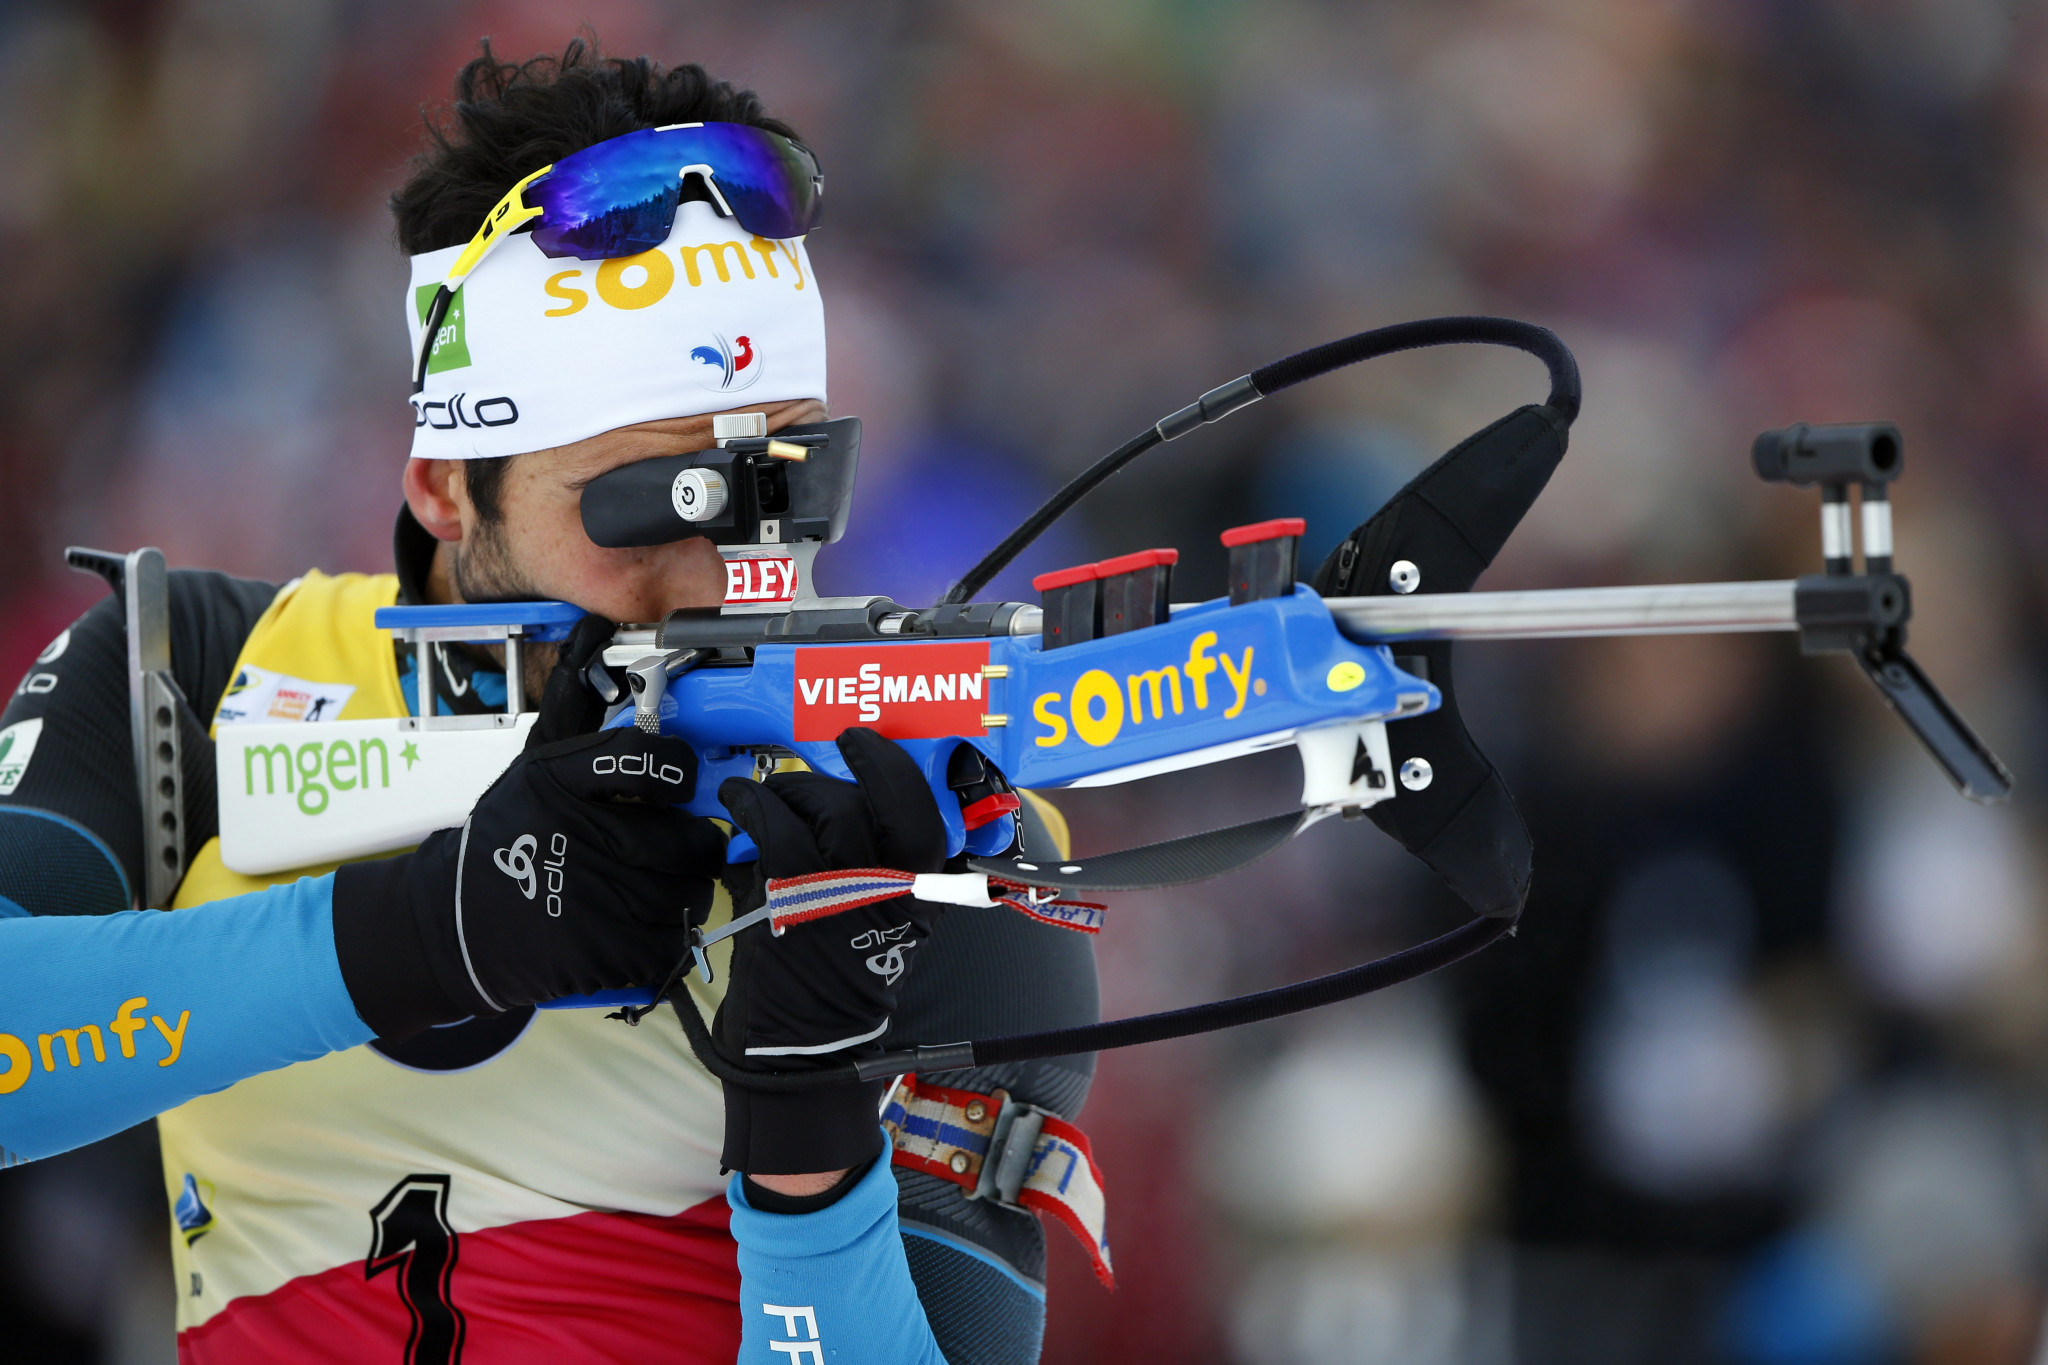 Martin Fourcade of France is a major name in the sport of biathlon ©Getty Images